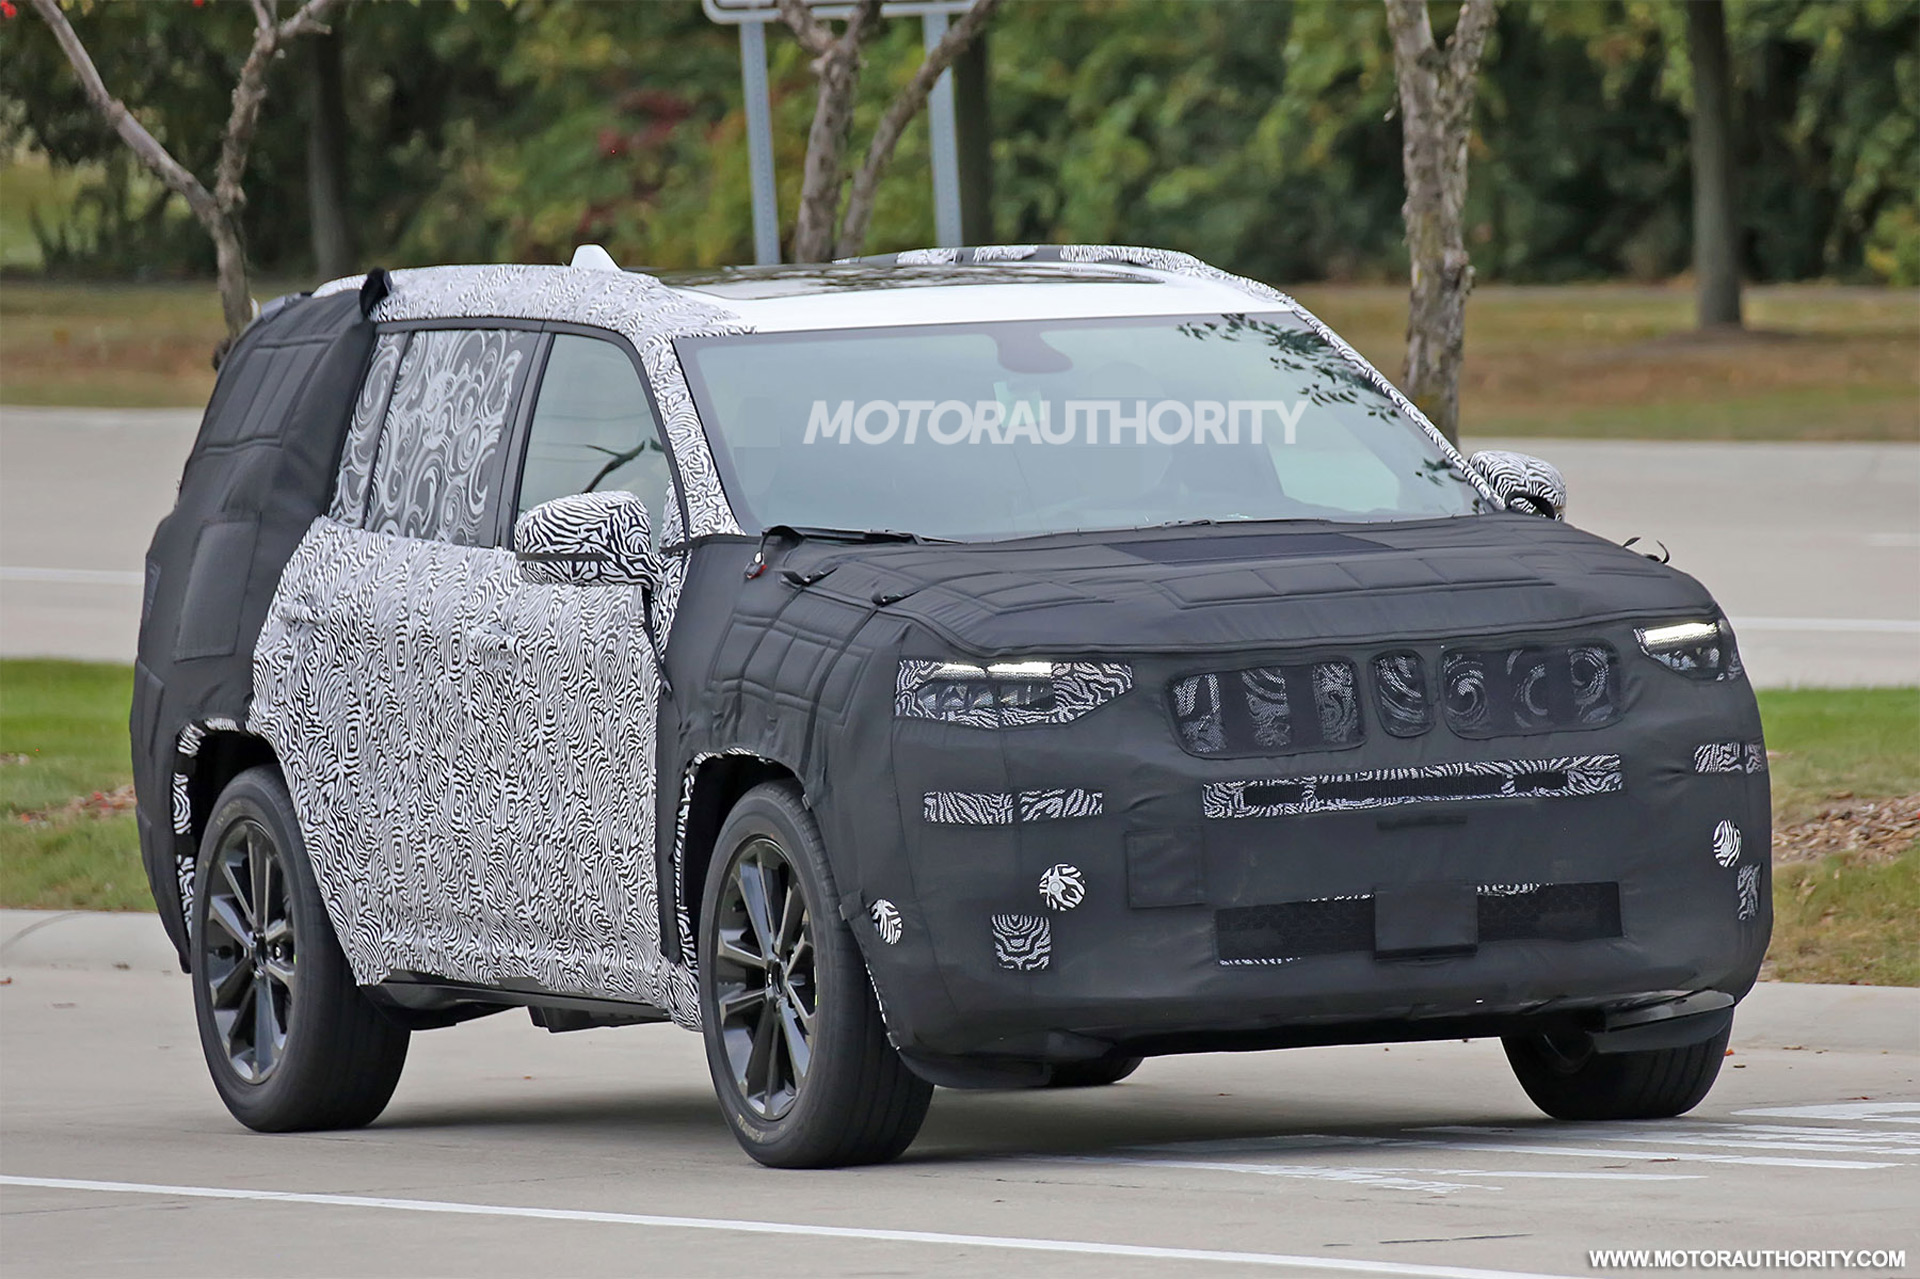 2019 Rav4 Spy Shots >> 2019 Jeep 3-row SUV (Yuntu) spy shots